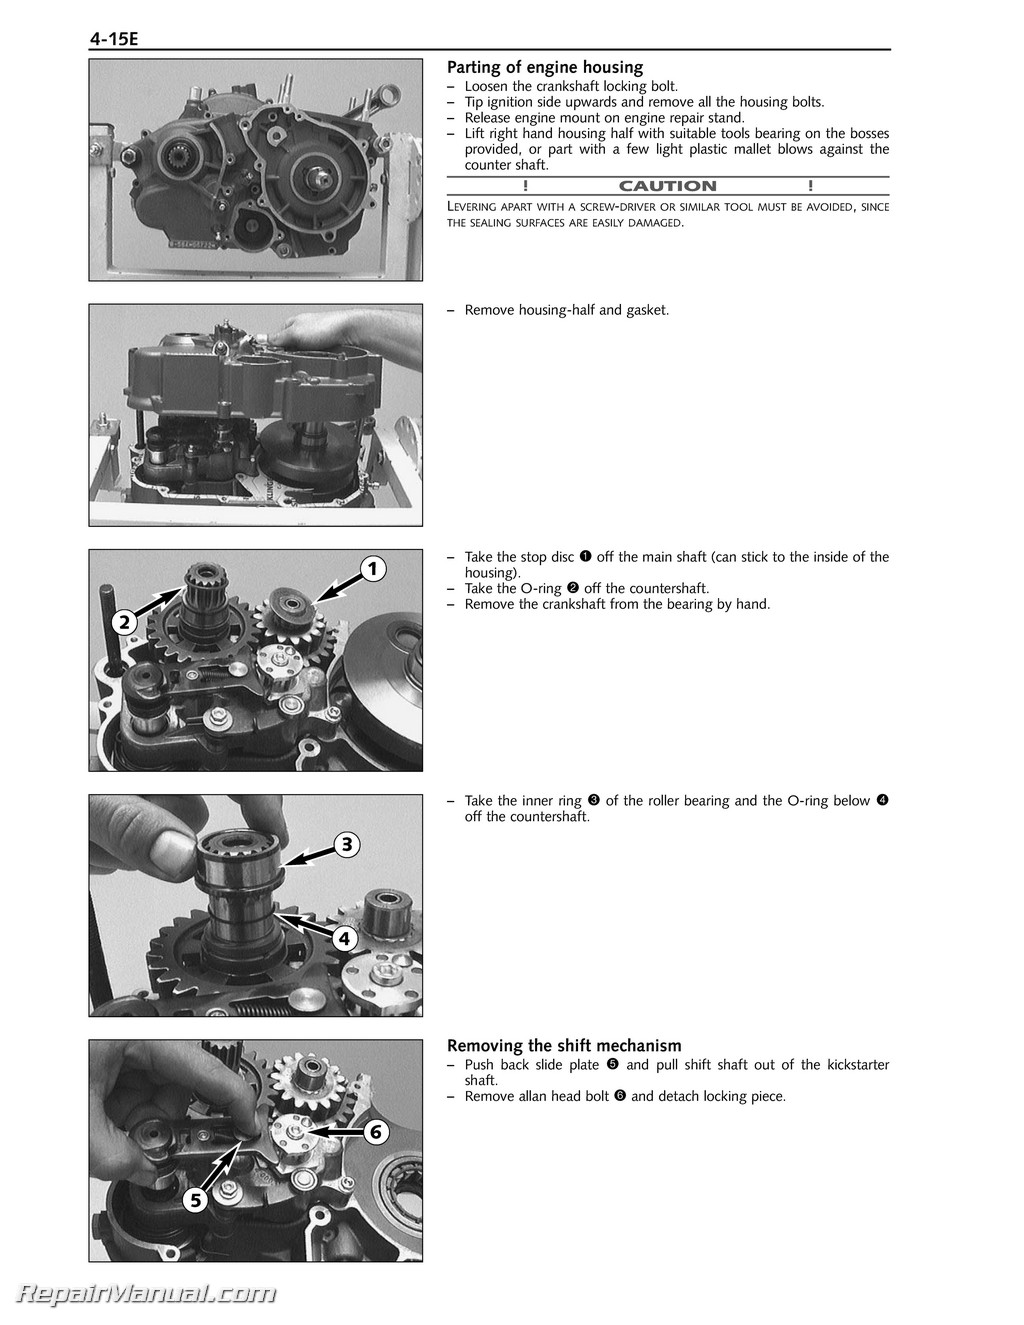 1998 2005 ktm 400 660 lc4 paper engine repair manual rh repairmanual com ktm lc4 620 manual ktm lc4 manual pdf